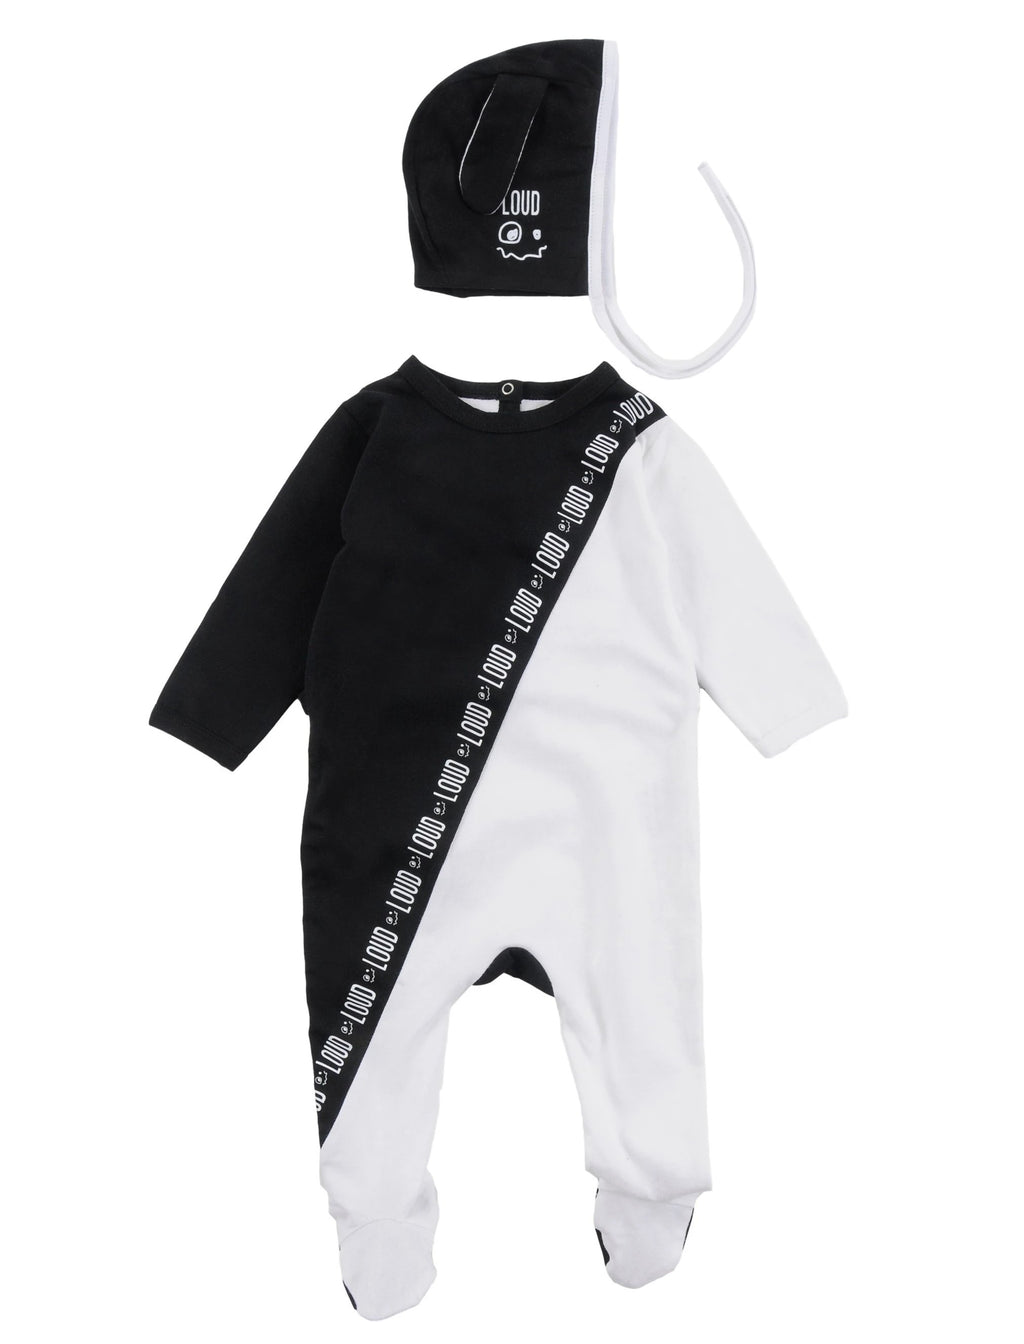 Loud Apparel Newborn Buddy & Cutie Set